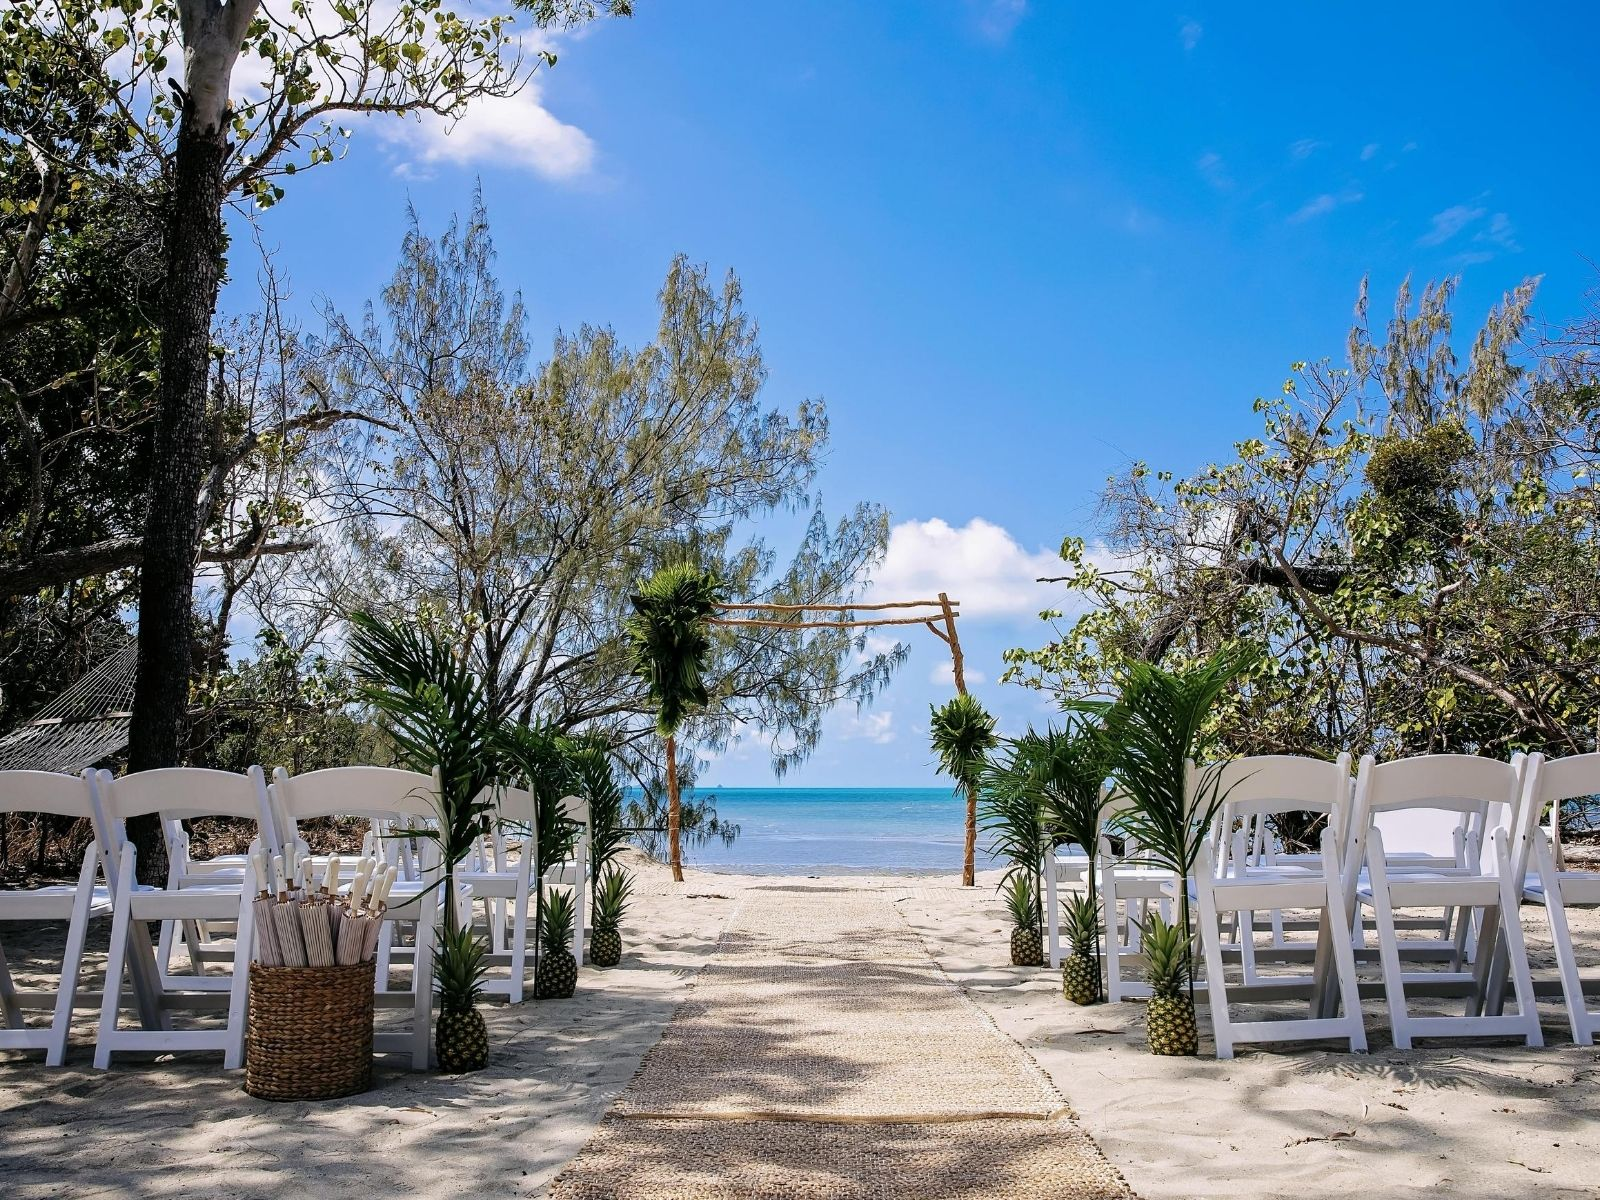 wedding ceremony set up on a beach at Paradise Cove Resort